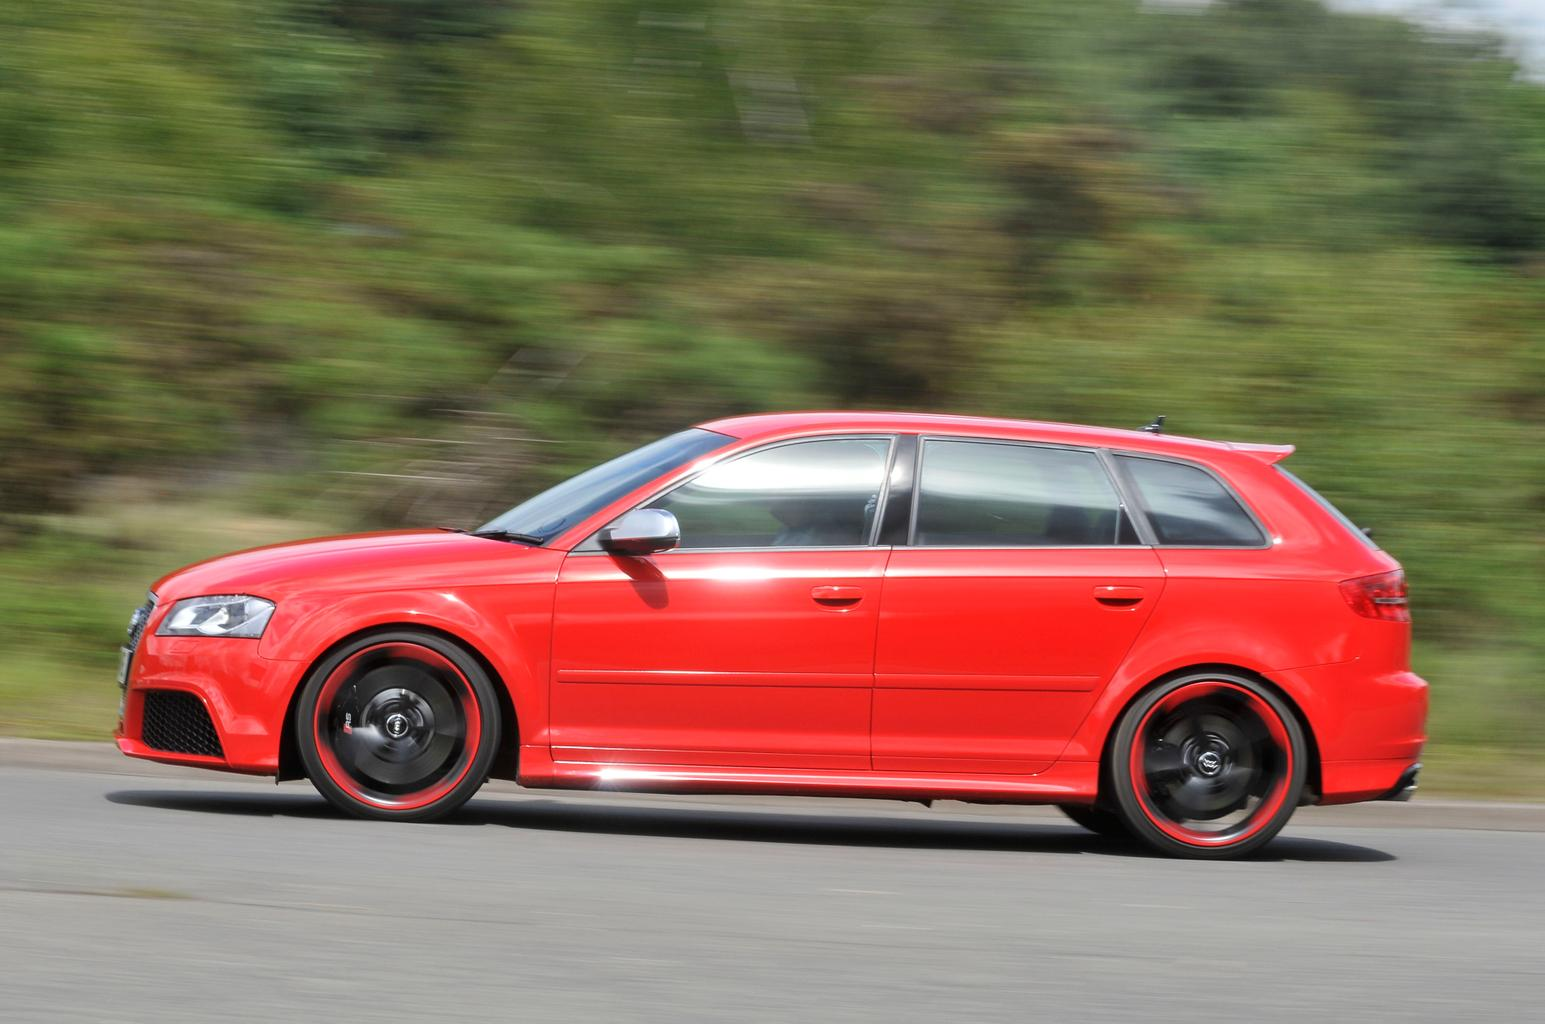 Used Audi RS3 vs BMW 1 M Coupe